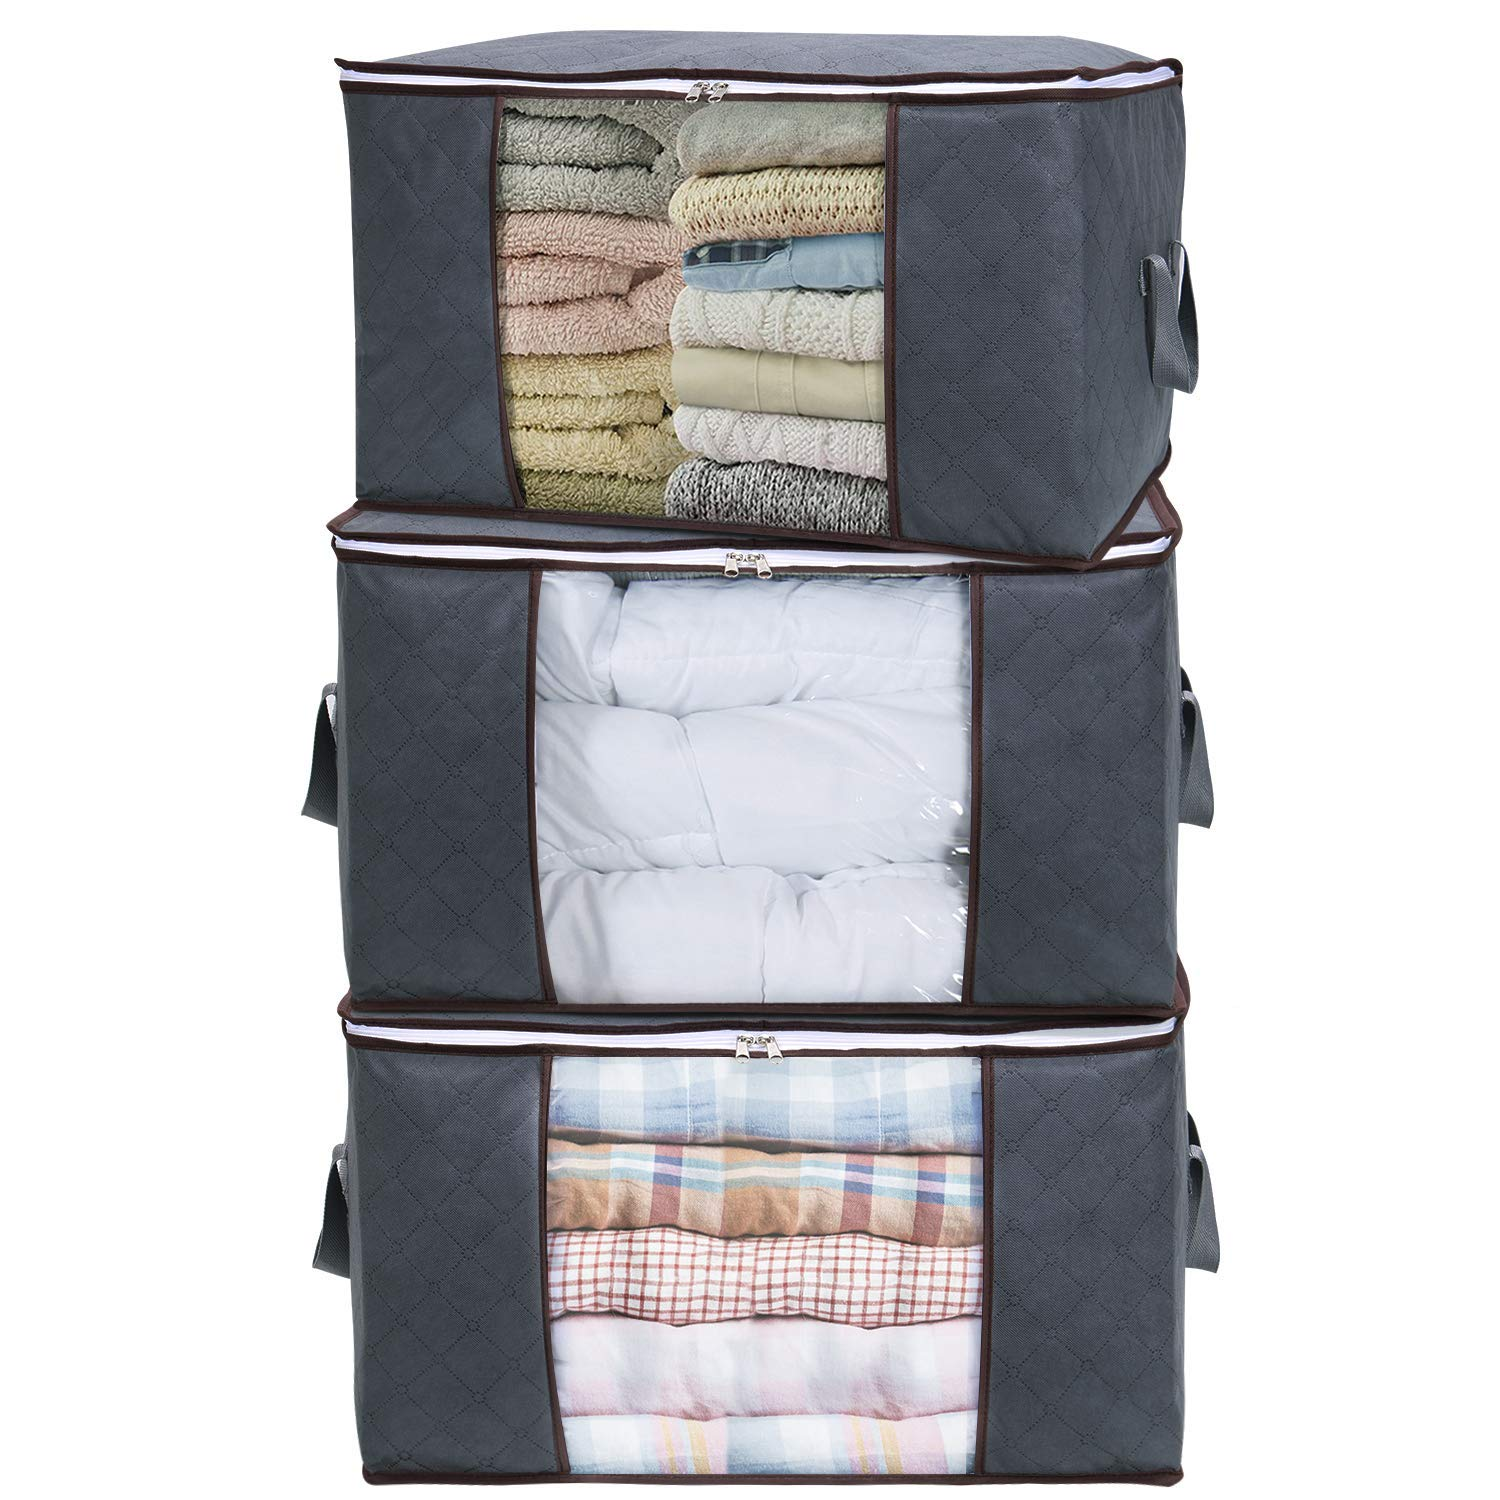 Large Capacity Clothes Storage Bag Organizer,3 Pack